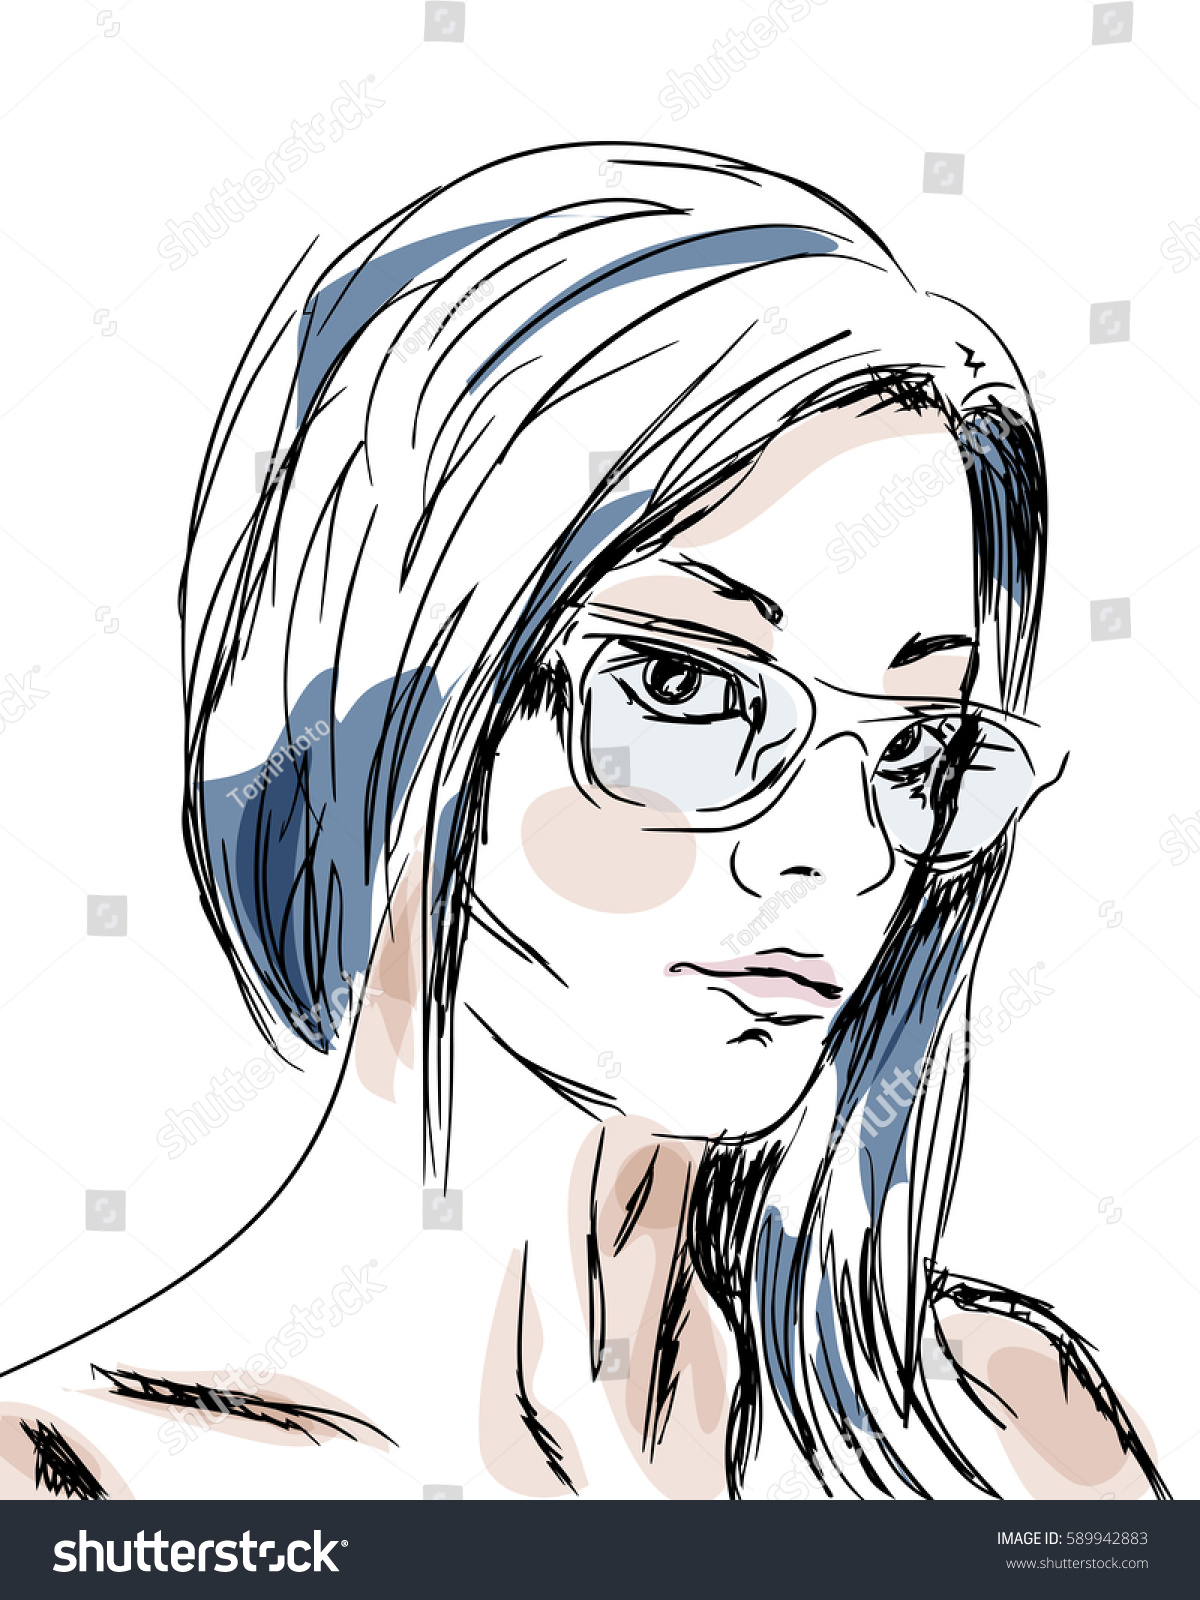 https://www.shutterstock.com/image-vector/hand-drawn-sketch-girl-portrait-vector-589942883